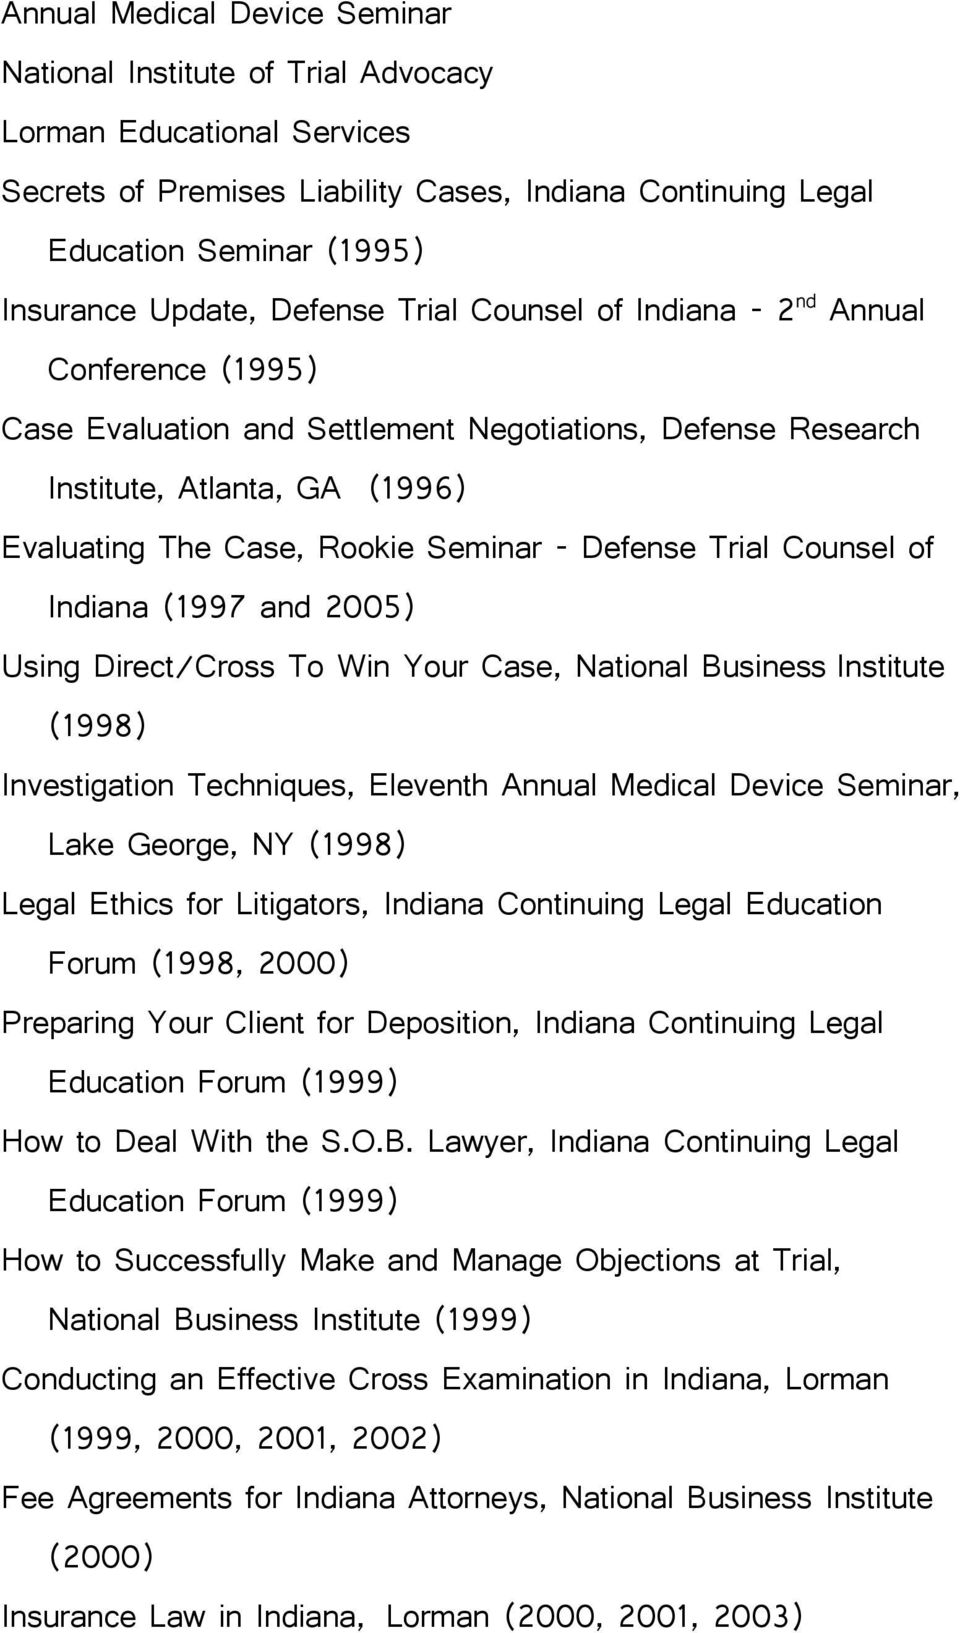 Defense Trial Counsel of Indiana (1997 and 2005) Using Direct/Cross To Win Your Case, National Business Institute (1998) Investigation Techniques, Eleventh Annual Medical Device Seminar, Lake George,